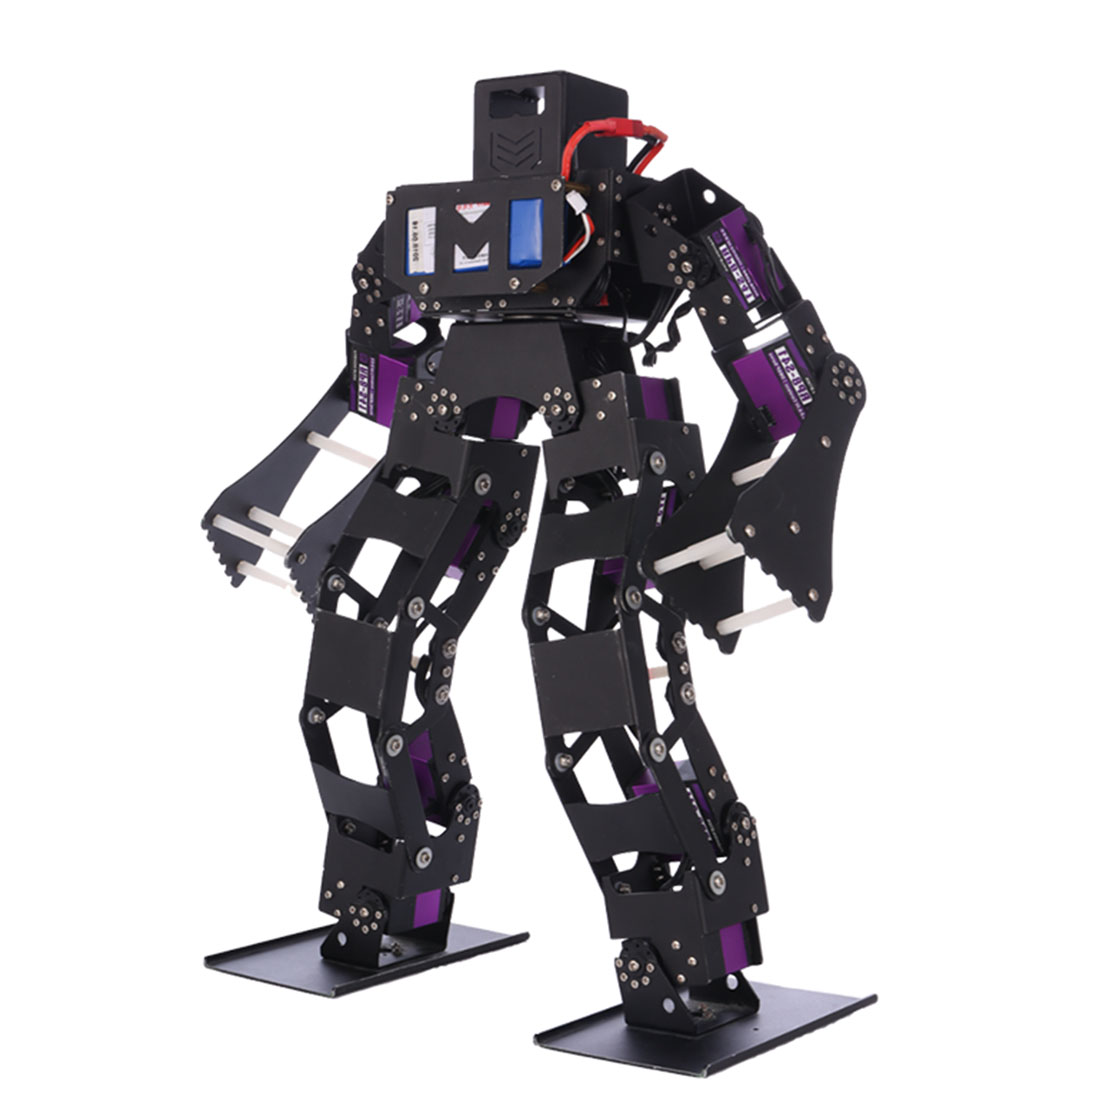 Programmable Biped Robot Boxing Competition Robot High Tech Toy DIY Stem Robot Compatible with Arduino / Microbit / STM32 / 51 2